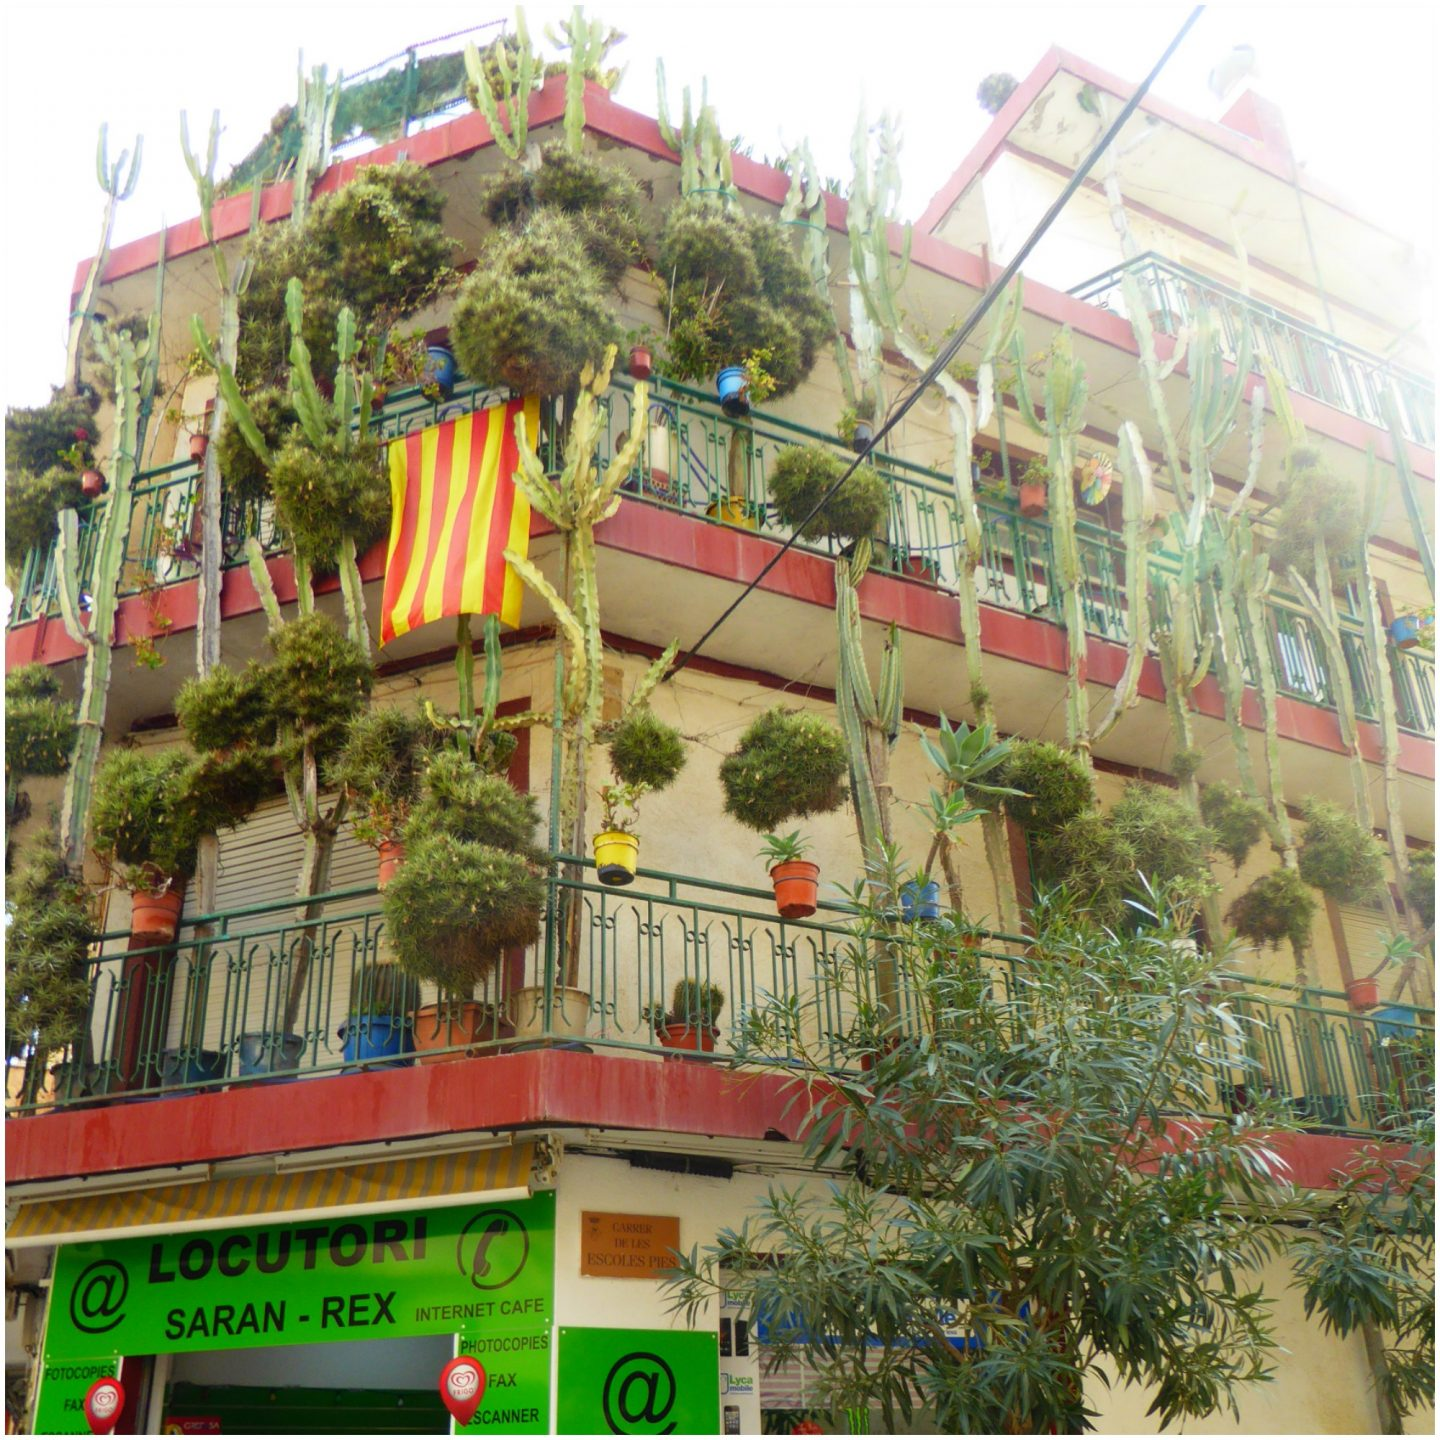 Family attractions near Barcelona Calella Town cactus house